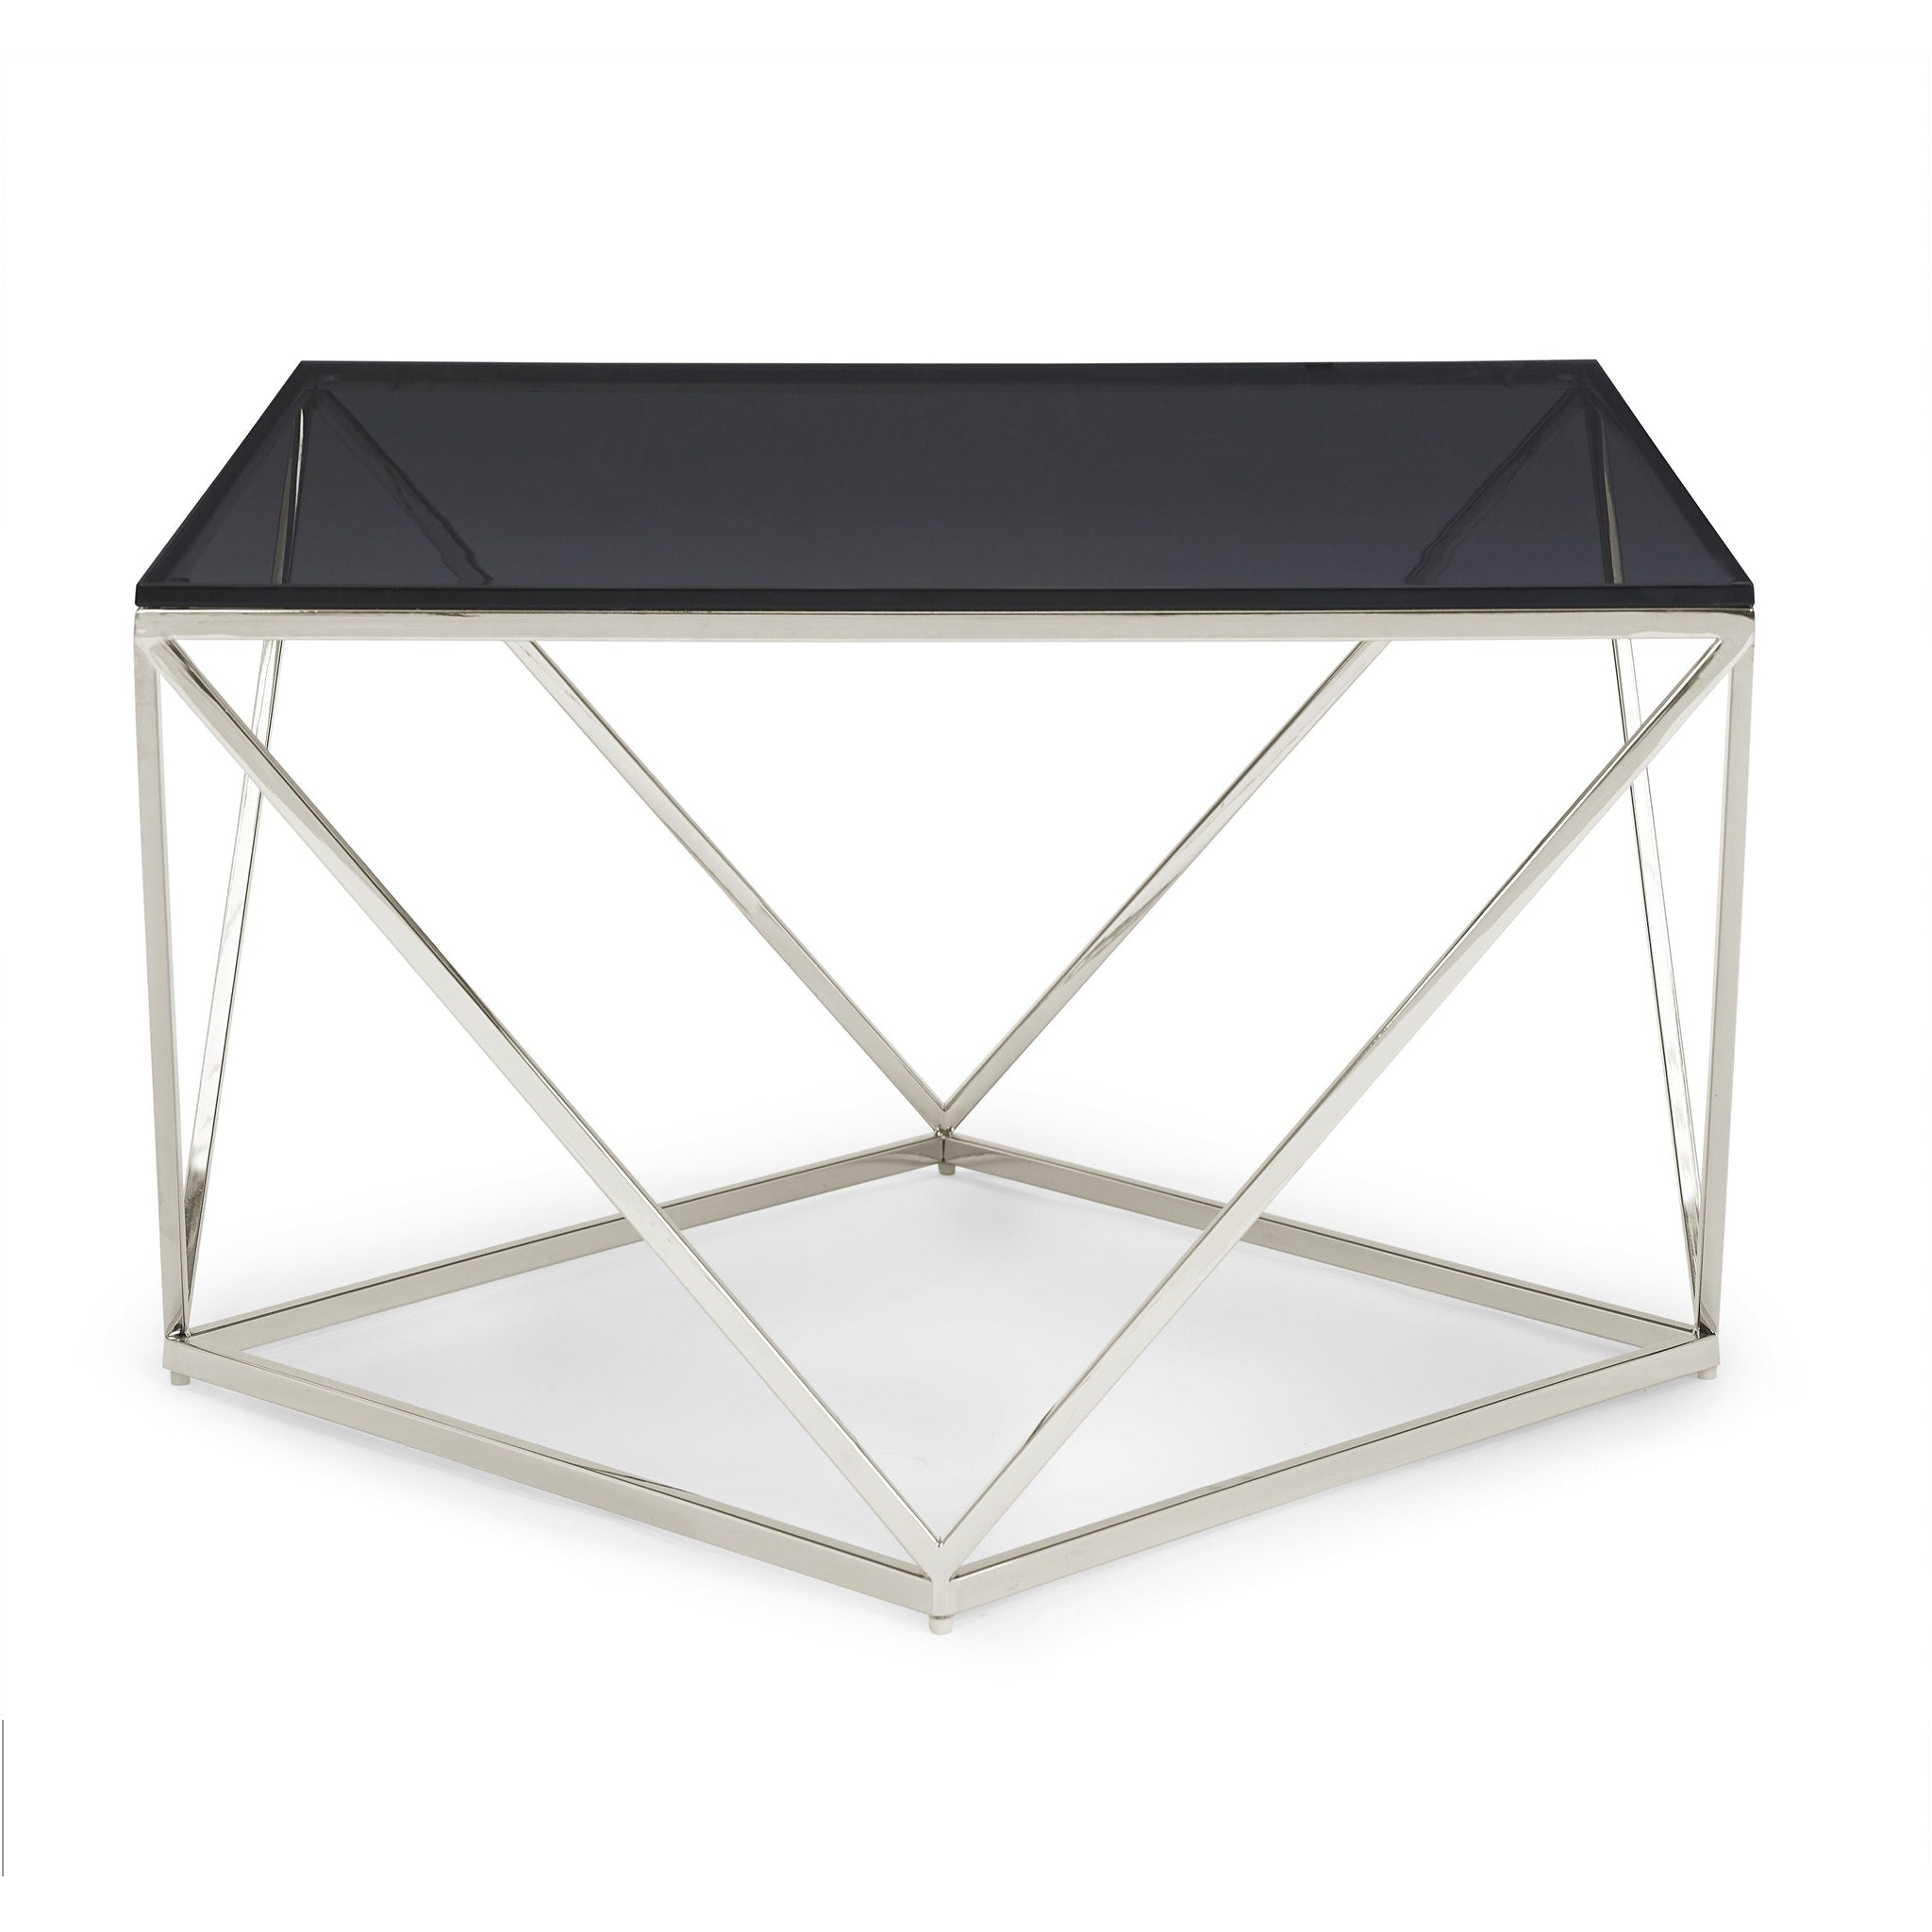 Aria Smoked Glass and Polished Stainless Steel Coffee Table